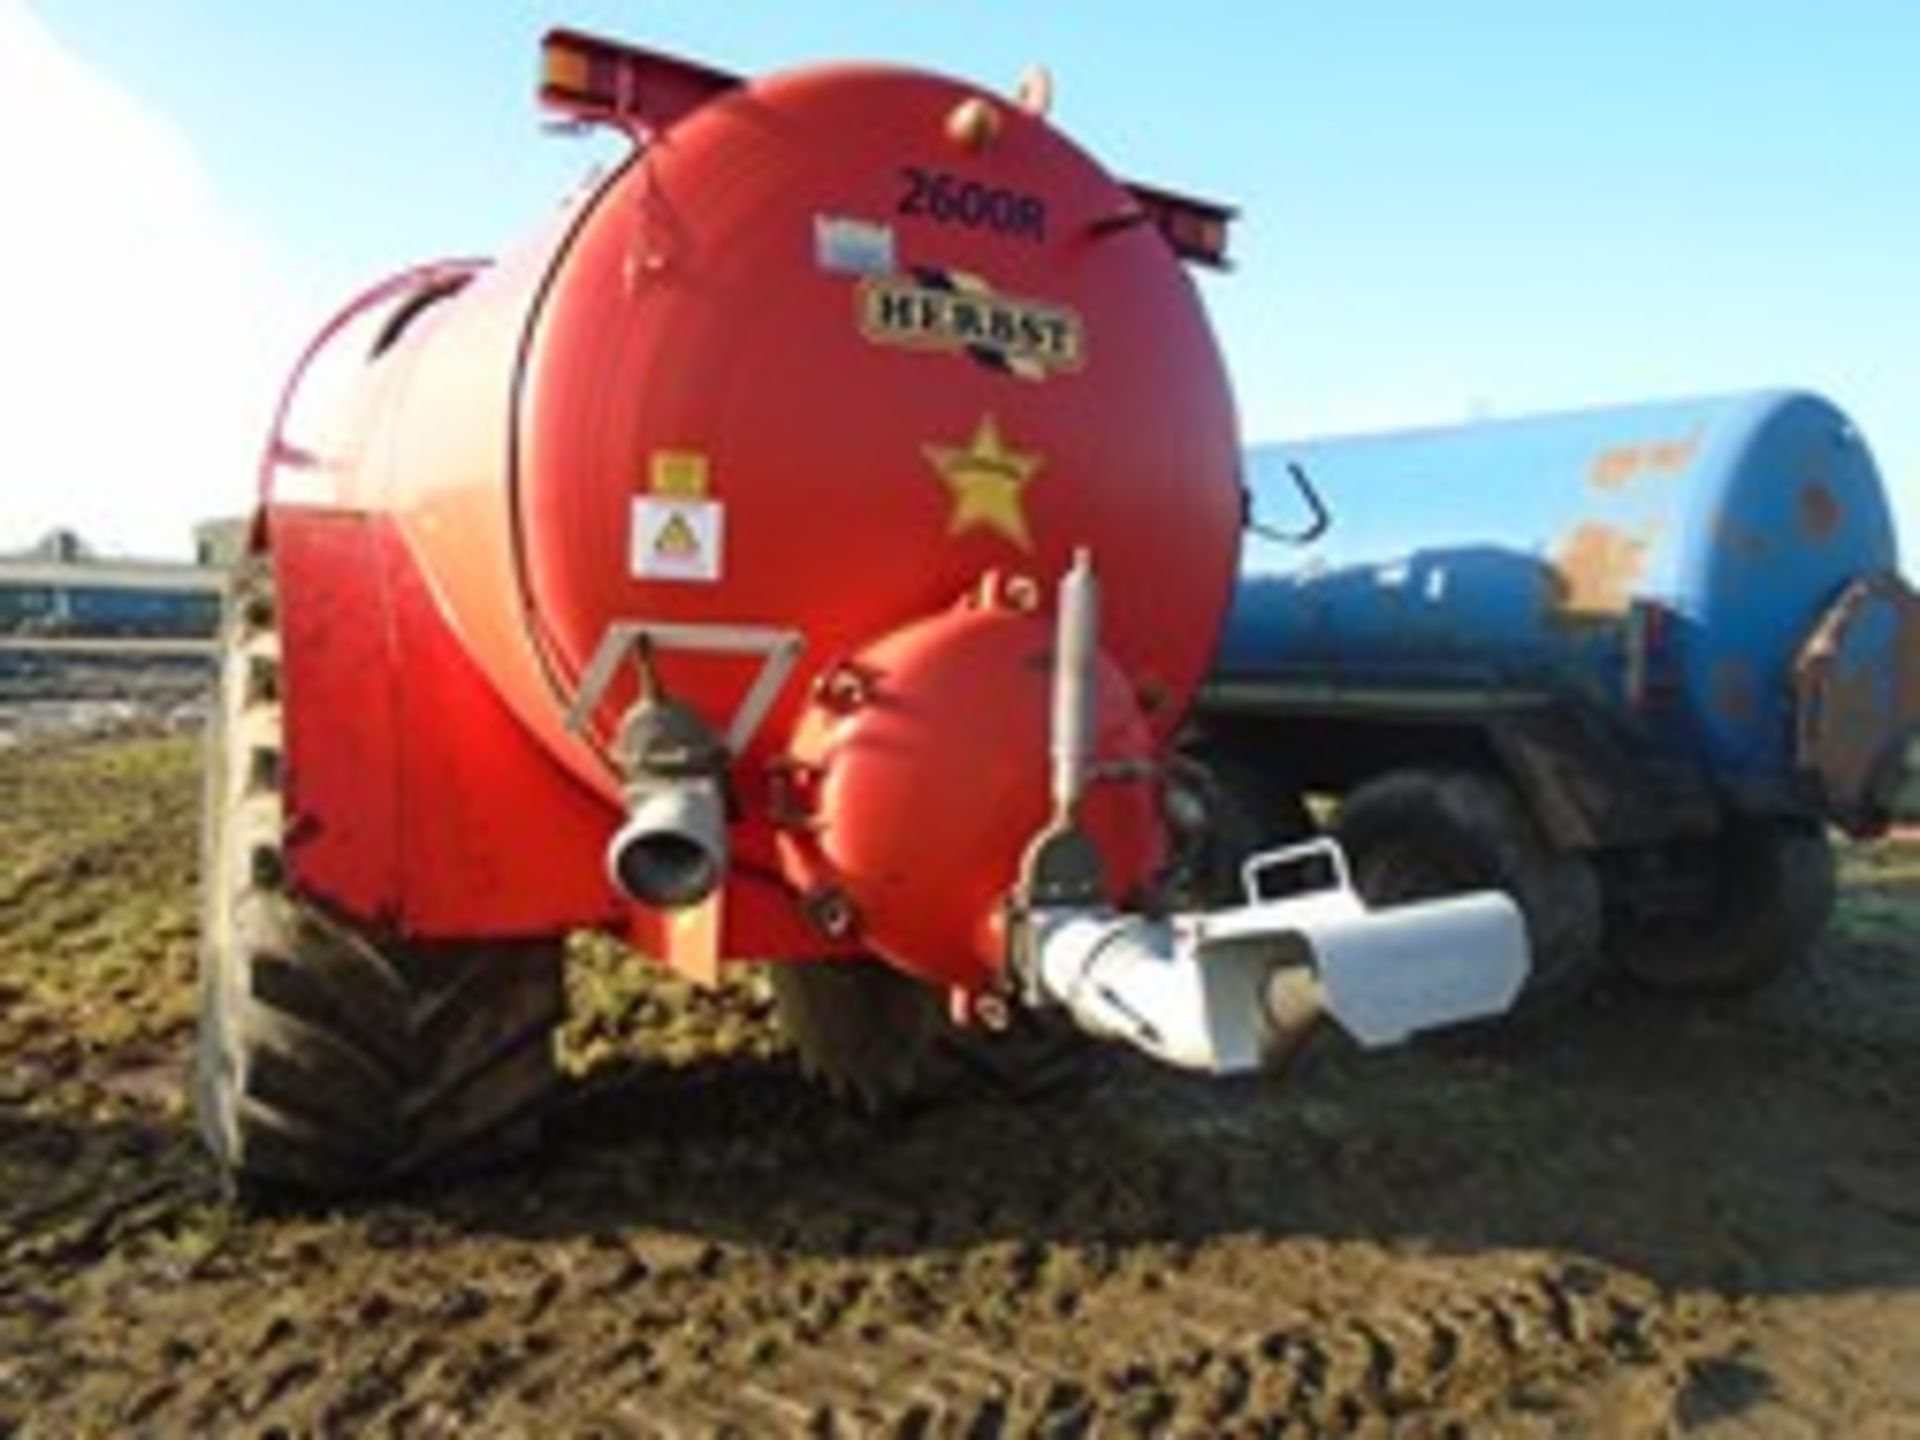 Lot 42 - Herbst 2600R slurry tanker 2009